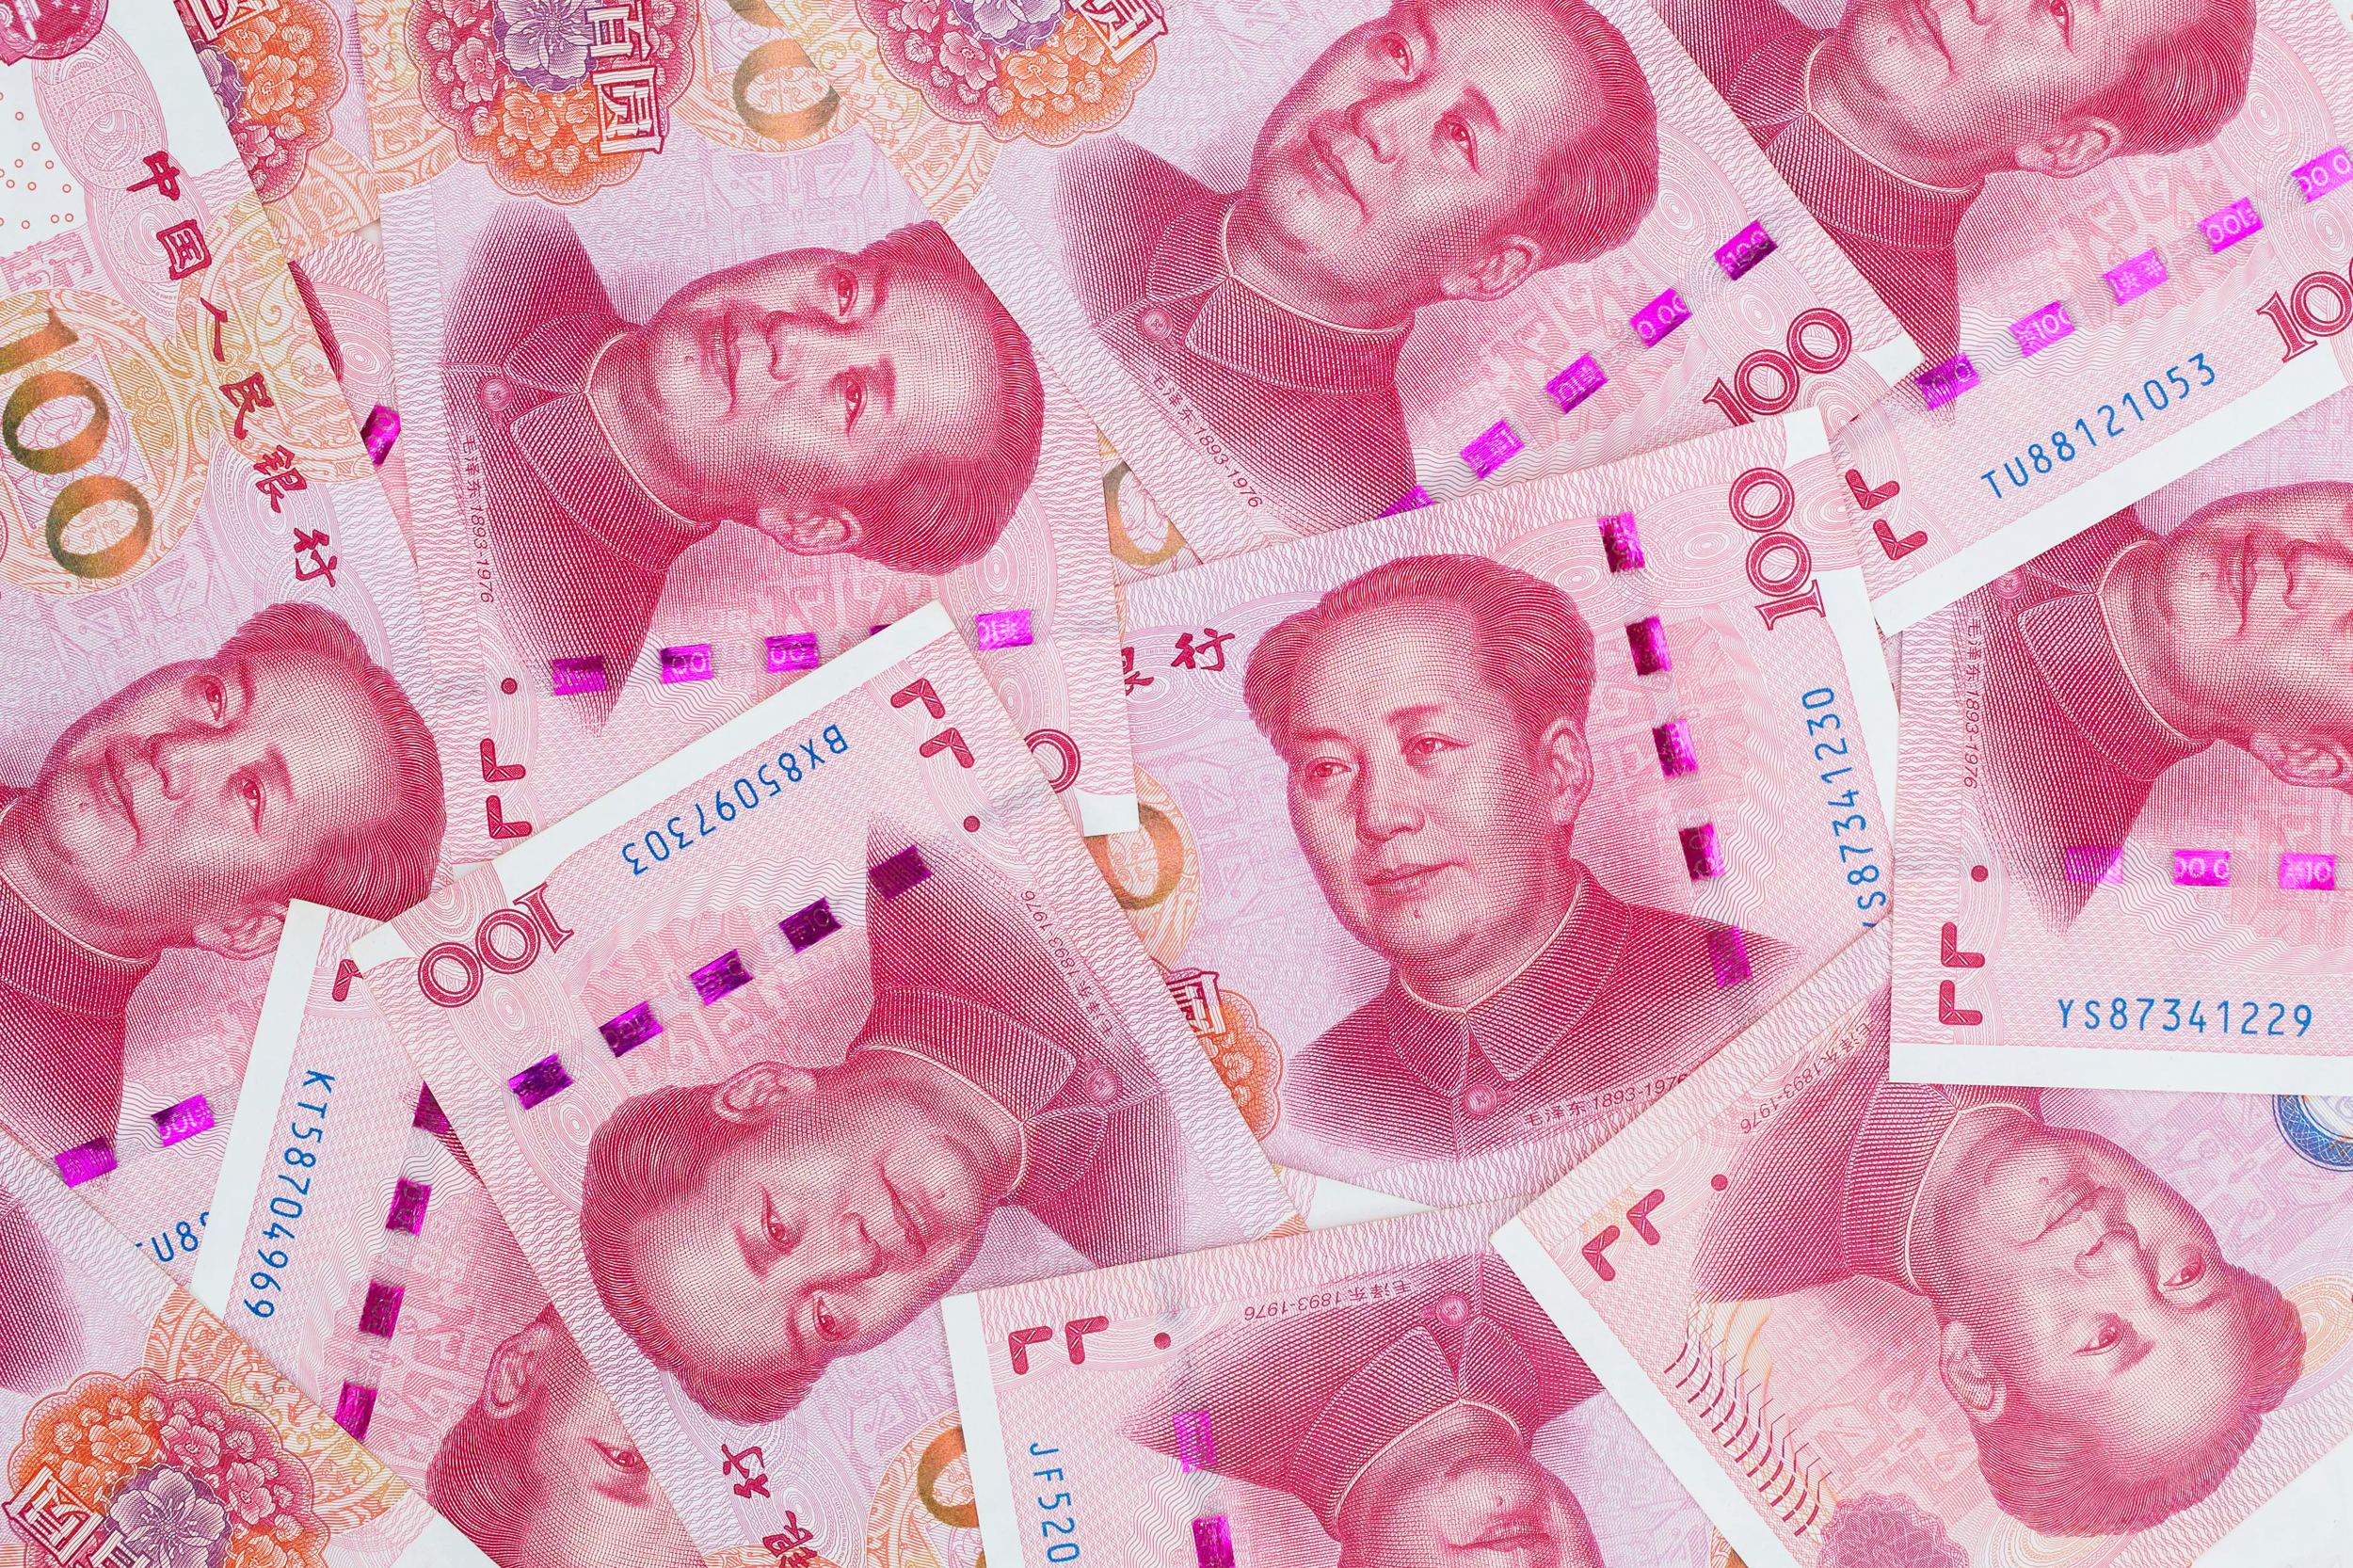 China's Communist Party wants billionaires to give back in new vision for society